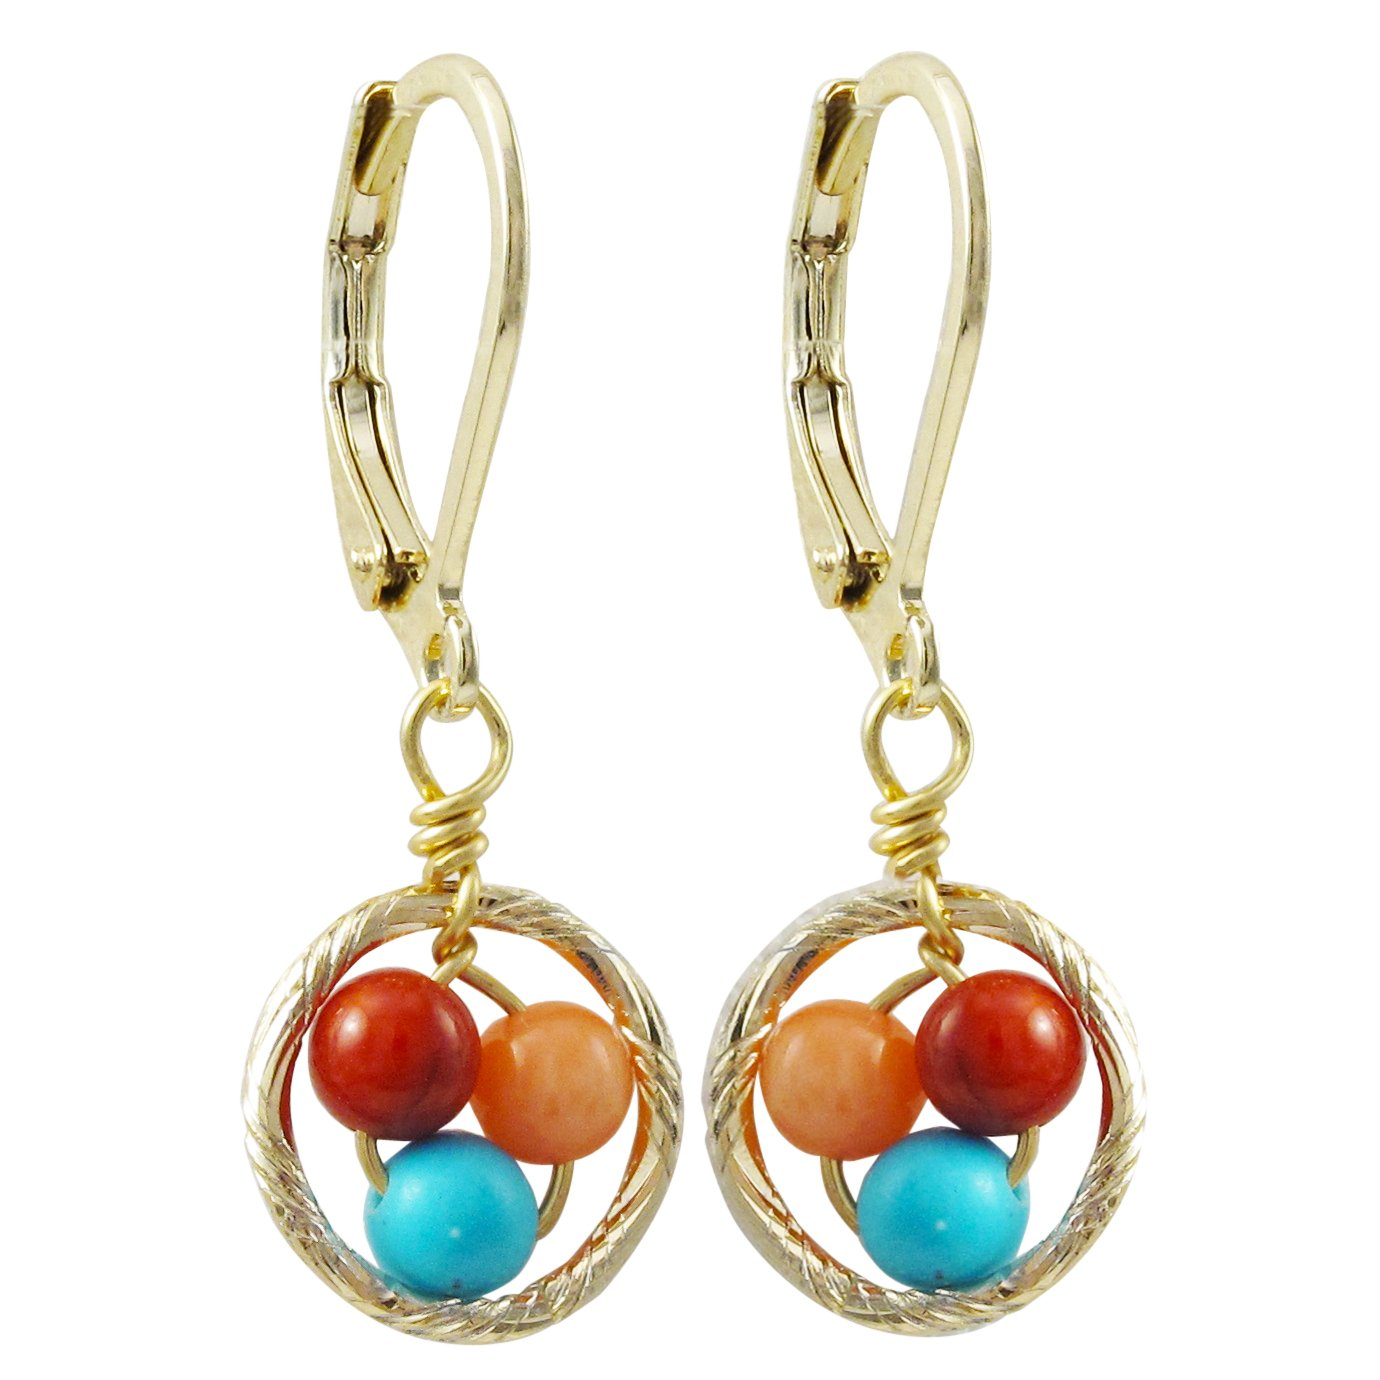 Blue and Peach Beads Open Circle Girls Dangle Earrings Ivy and Max Gold Finish Red